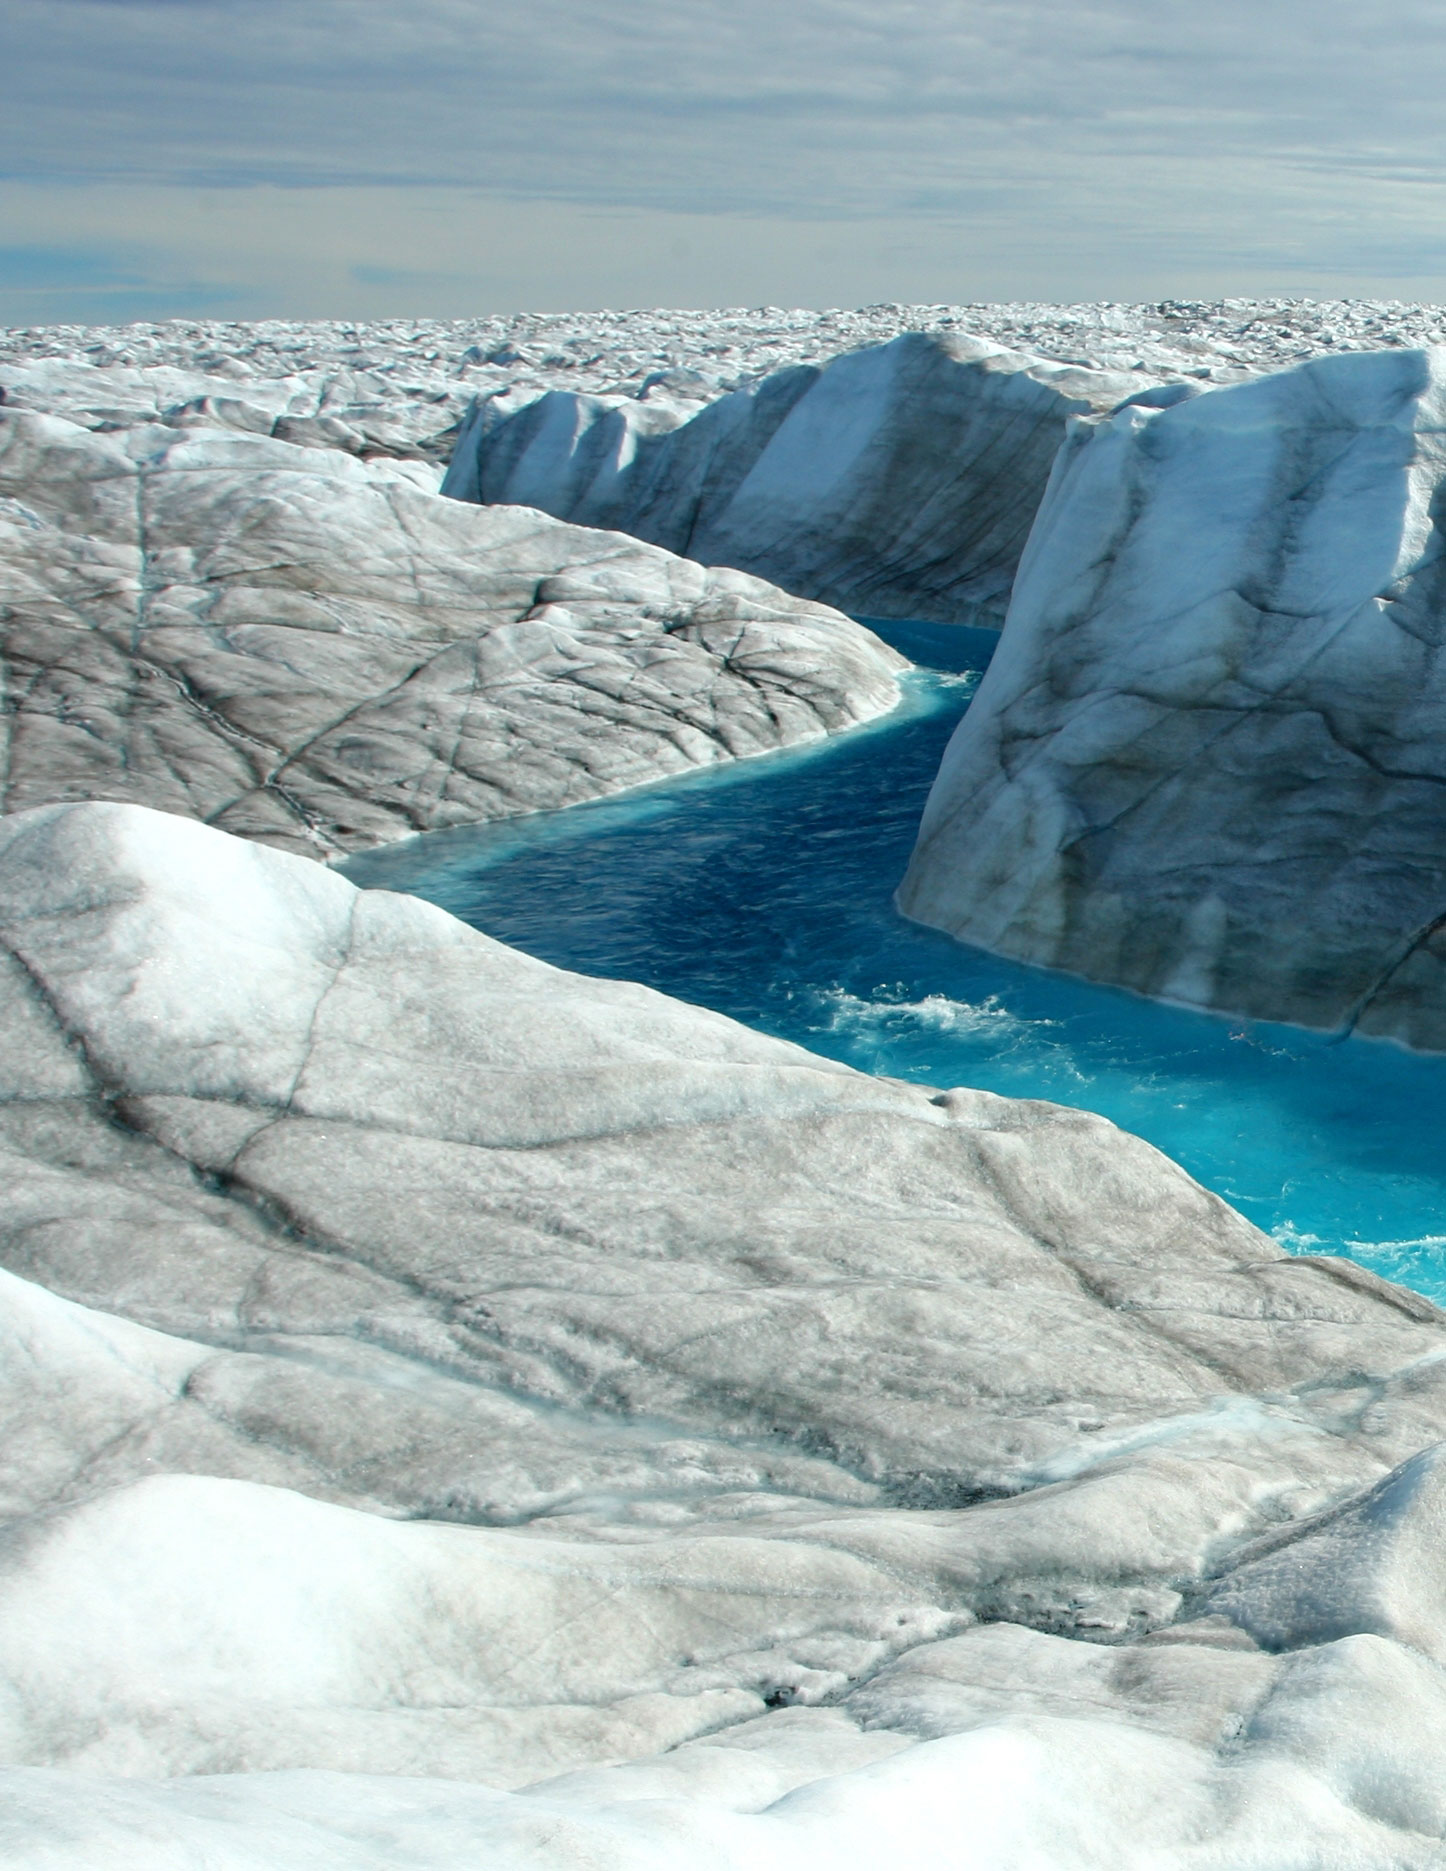 Southwest >> New Research Shows Greenland Ice Sheet Movement is Decreasing Despite Warming